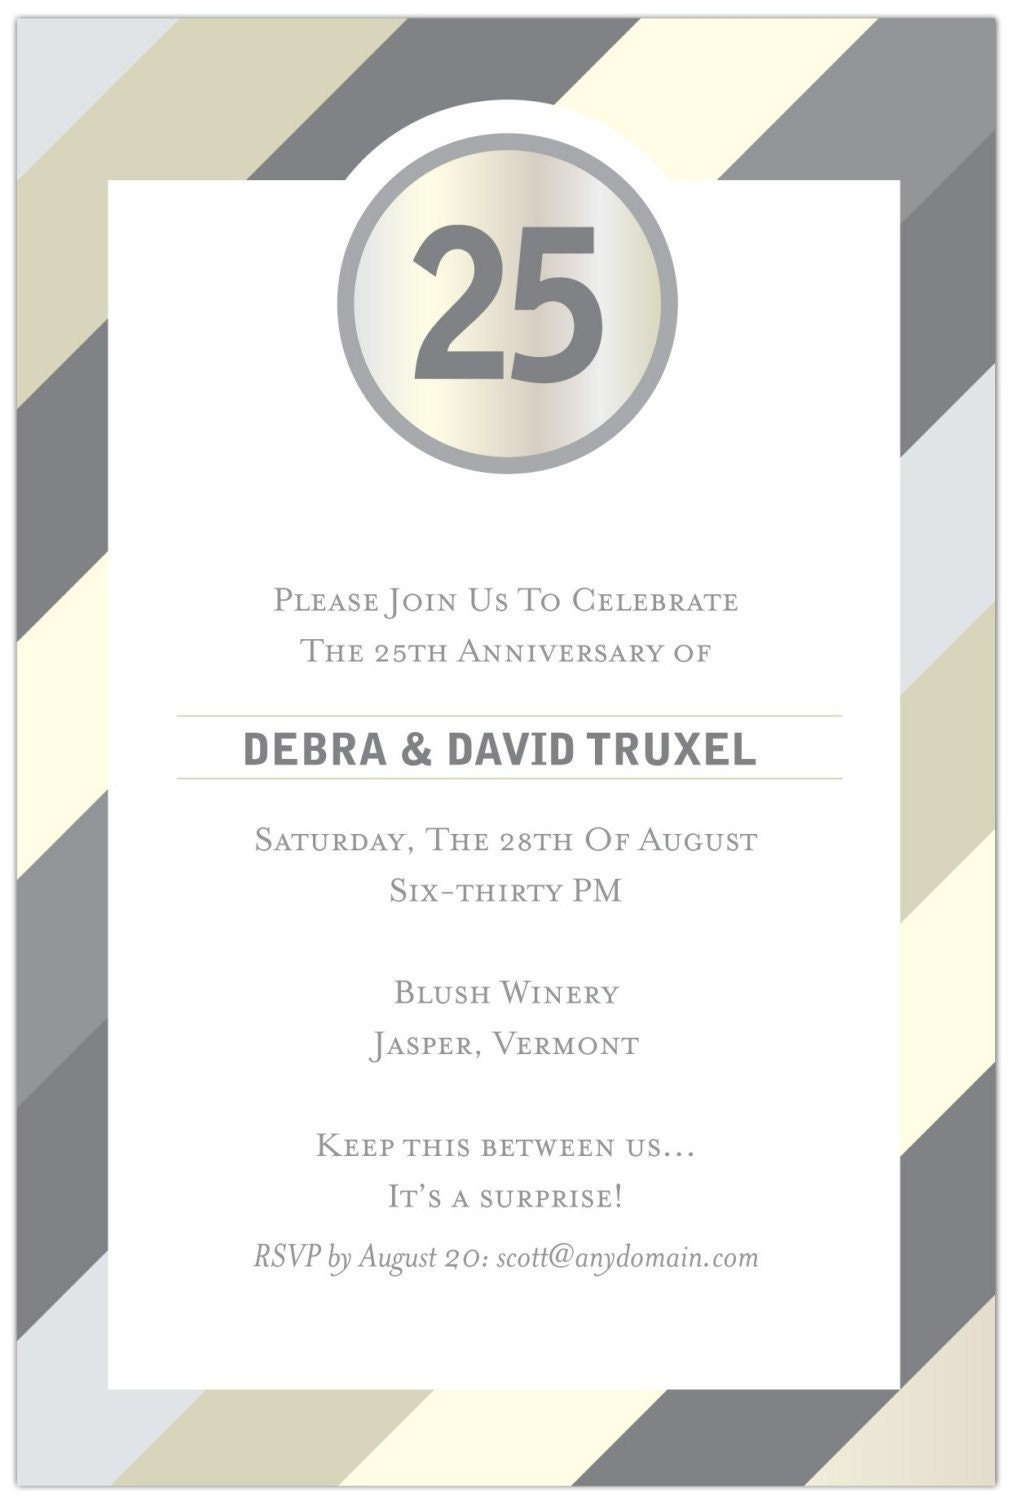 Anniversary party invitation wording funny cool 25th anniversary